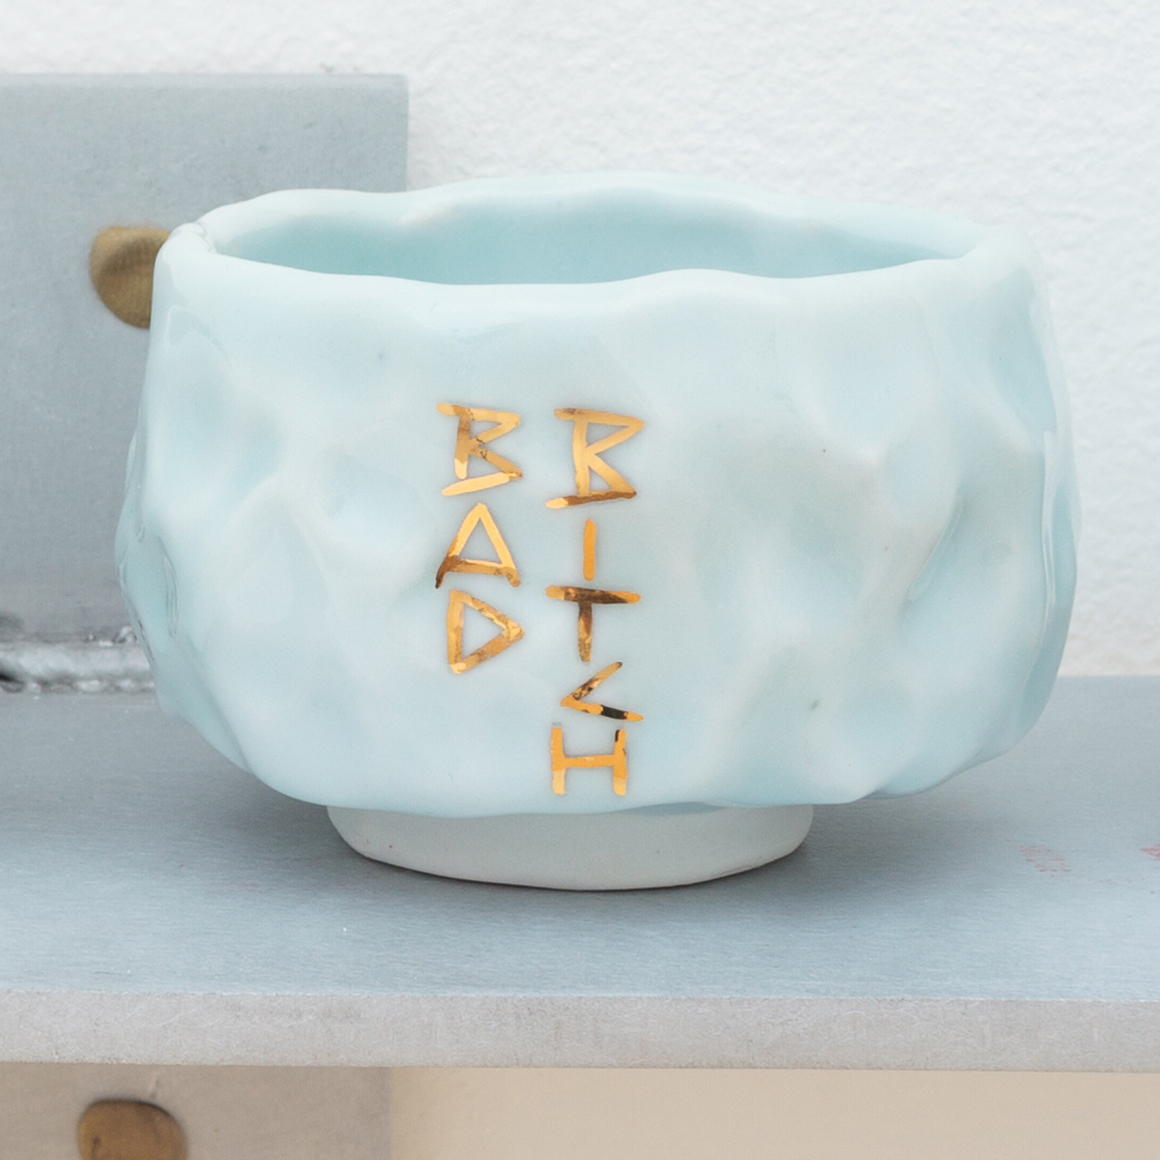 <p><em>Bad Bitch Cup (2)</em><span class='media'>Glazed porcelain, gold luster, aluminum, Sculpey clay</span>2 x 2.7625 x 2.7625in<br>2016<br><a class='inquire' href='mailto:info@gildargallery.com?subject=Artwork Inquiry PWAS0003&body=I am interested in finding out more about Bad Bitch Cup (2) by Patrice Renee Washington'>Inquire</a></p>